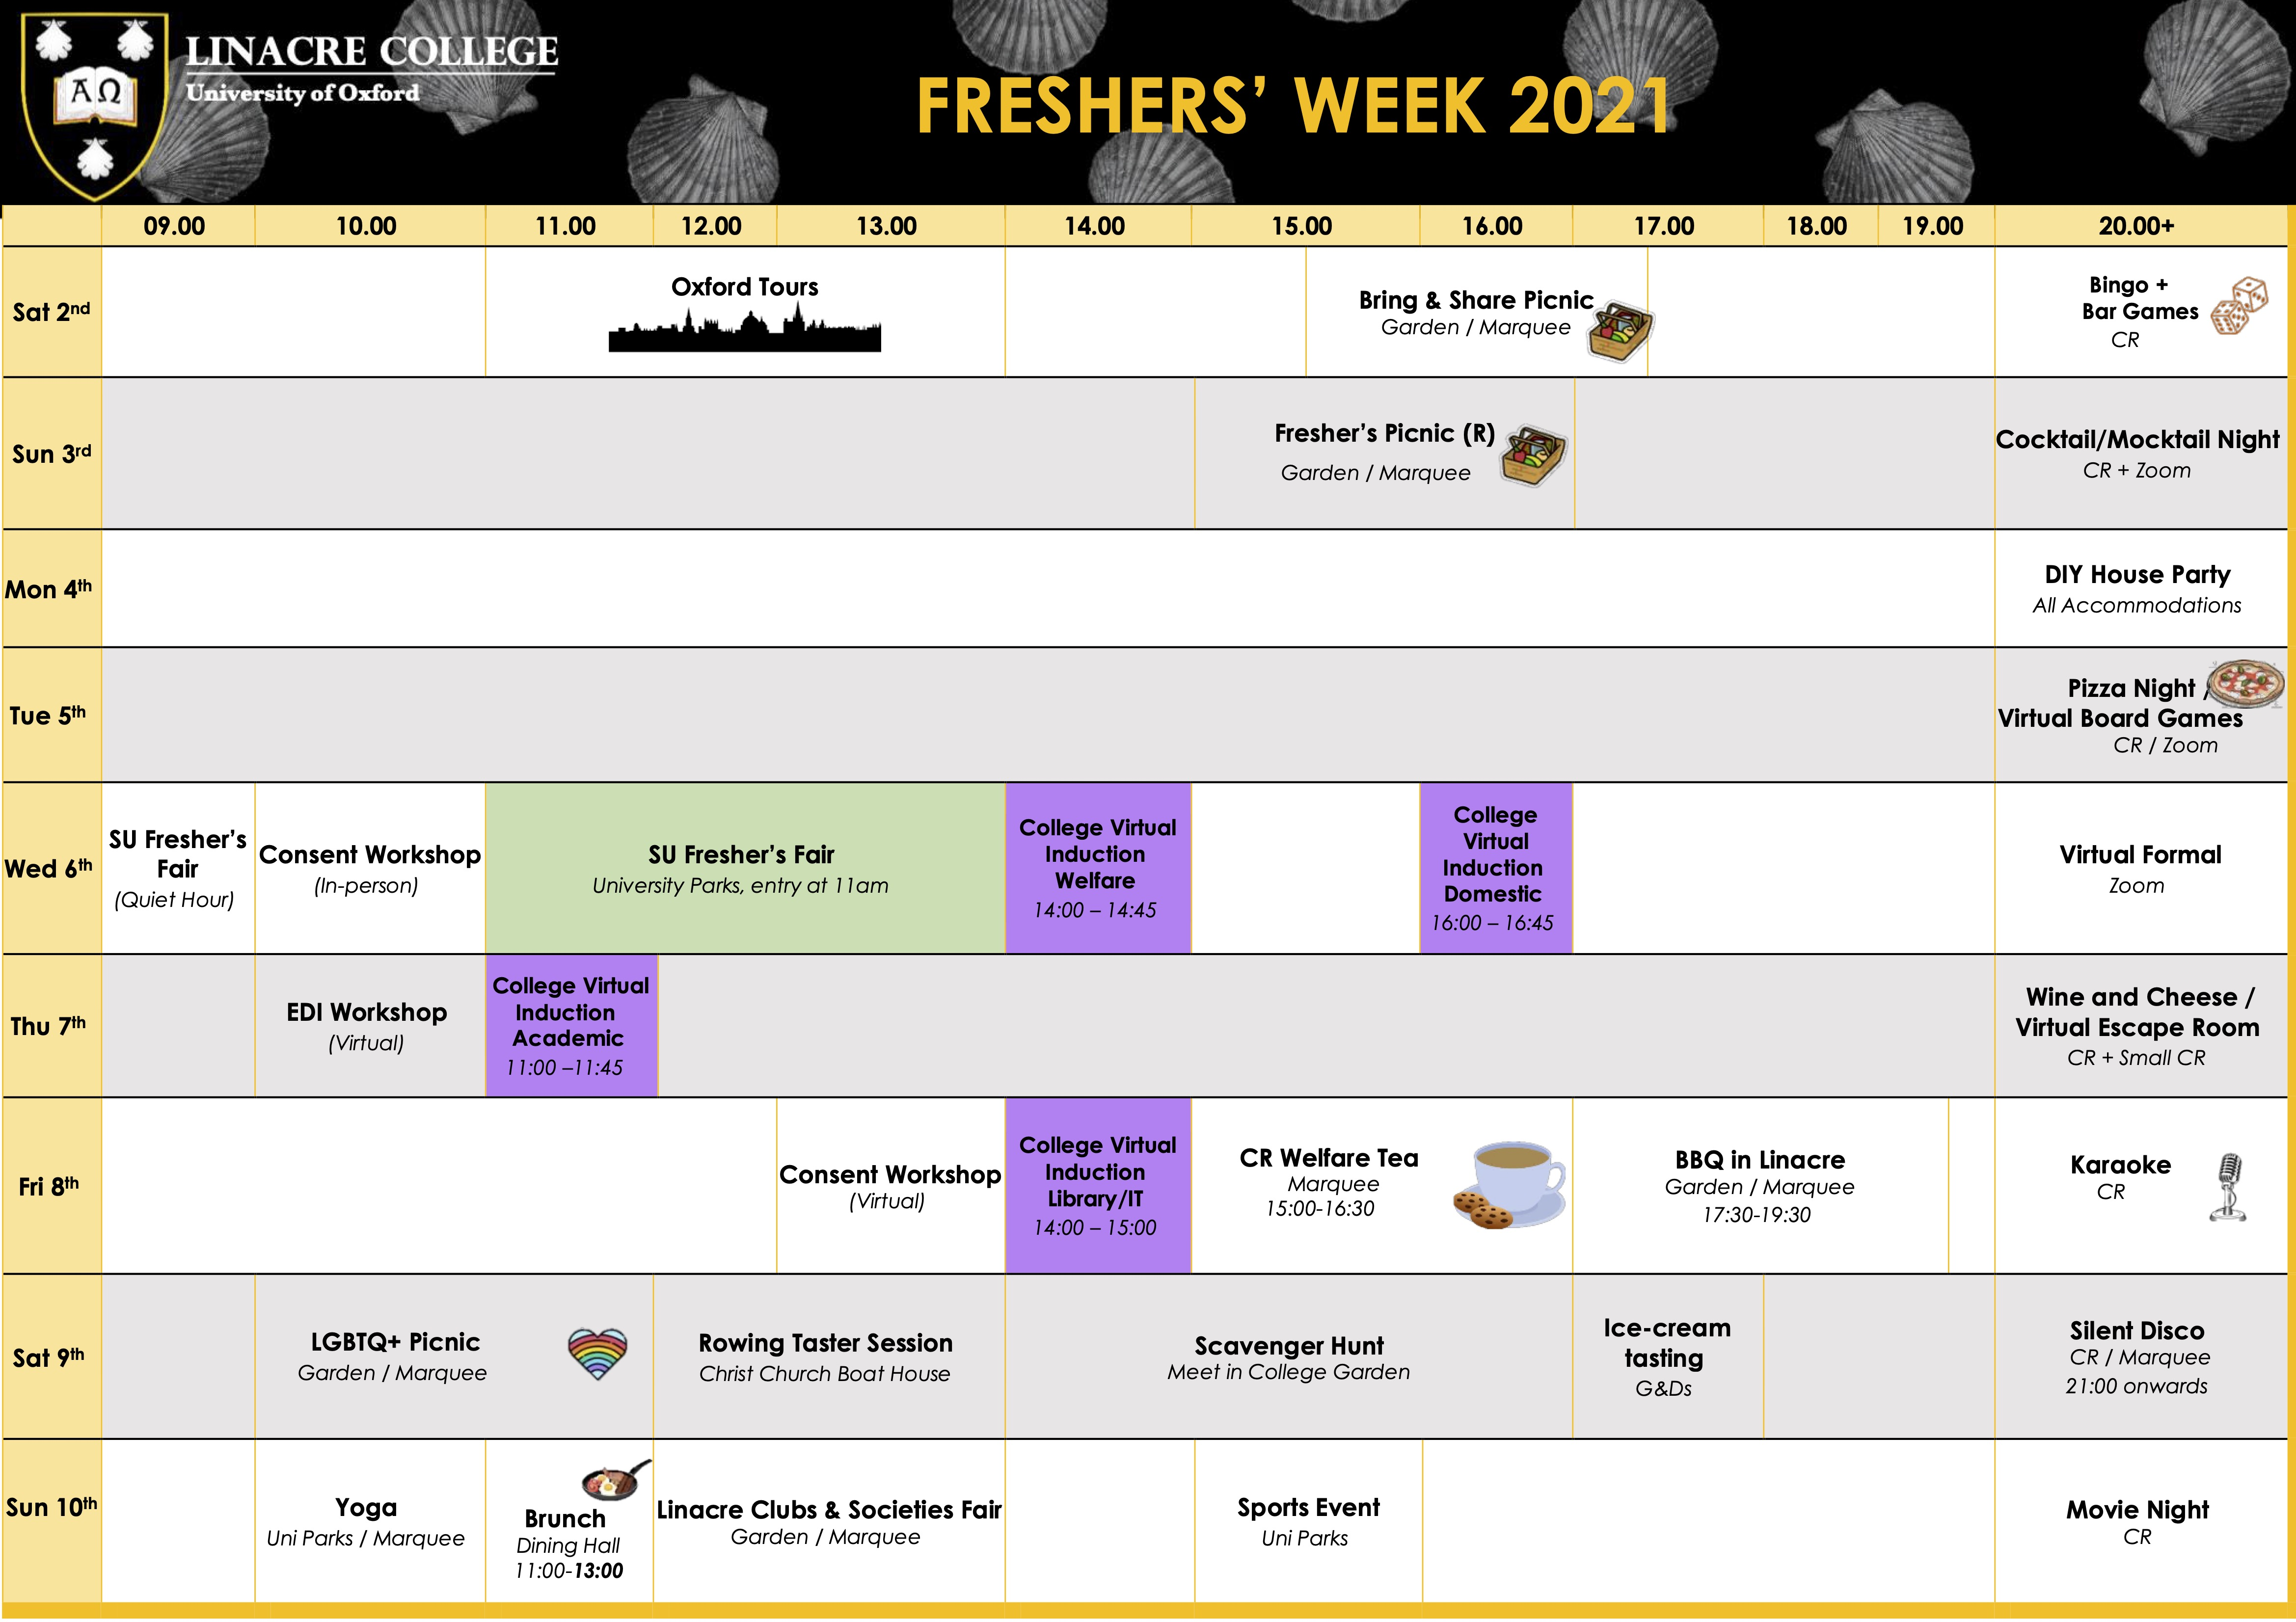 A table with a list of events and activities during the Freshers' Week. Accessible version is available on CR Events page.